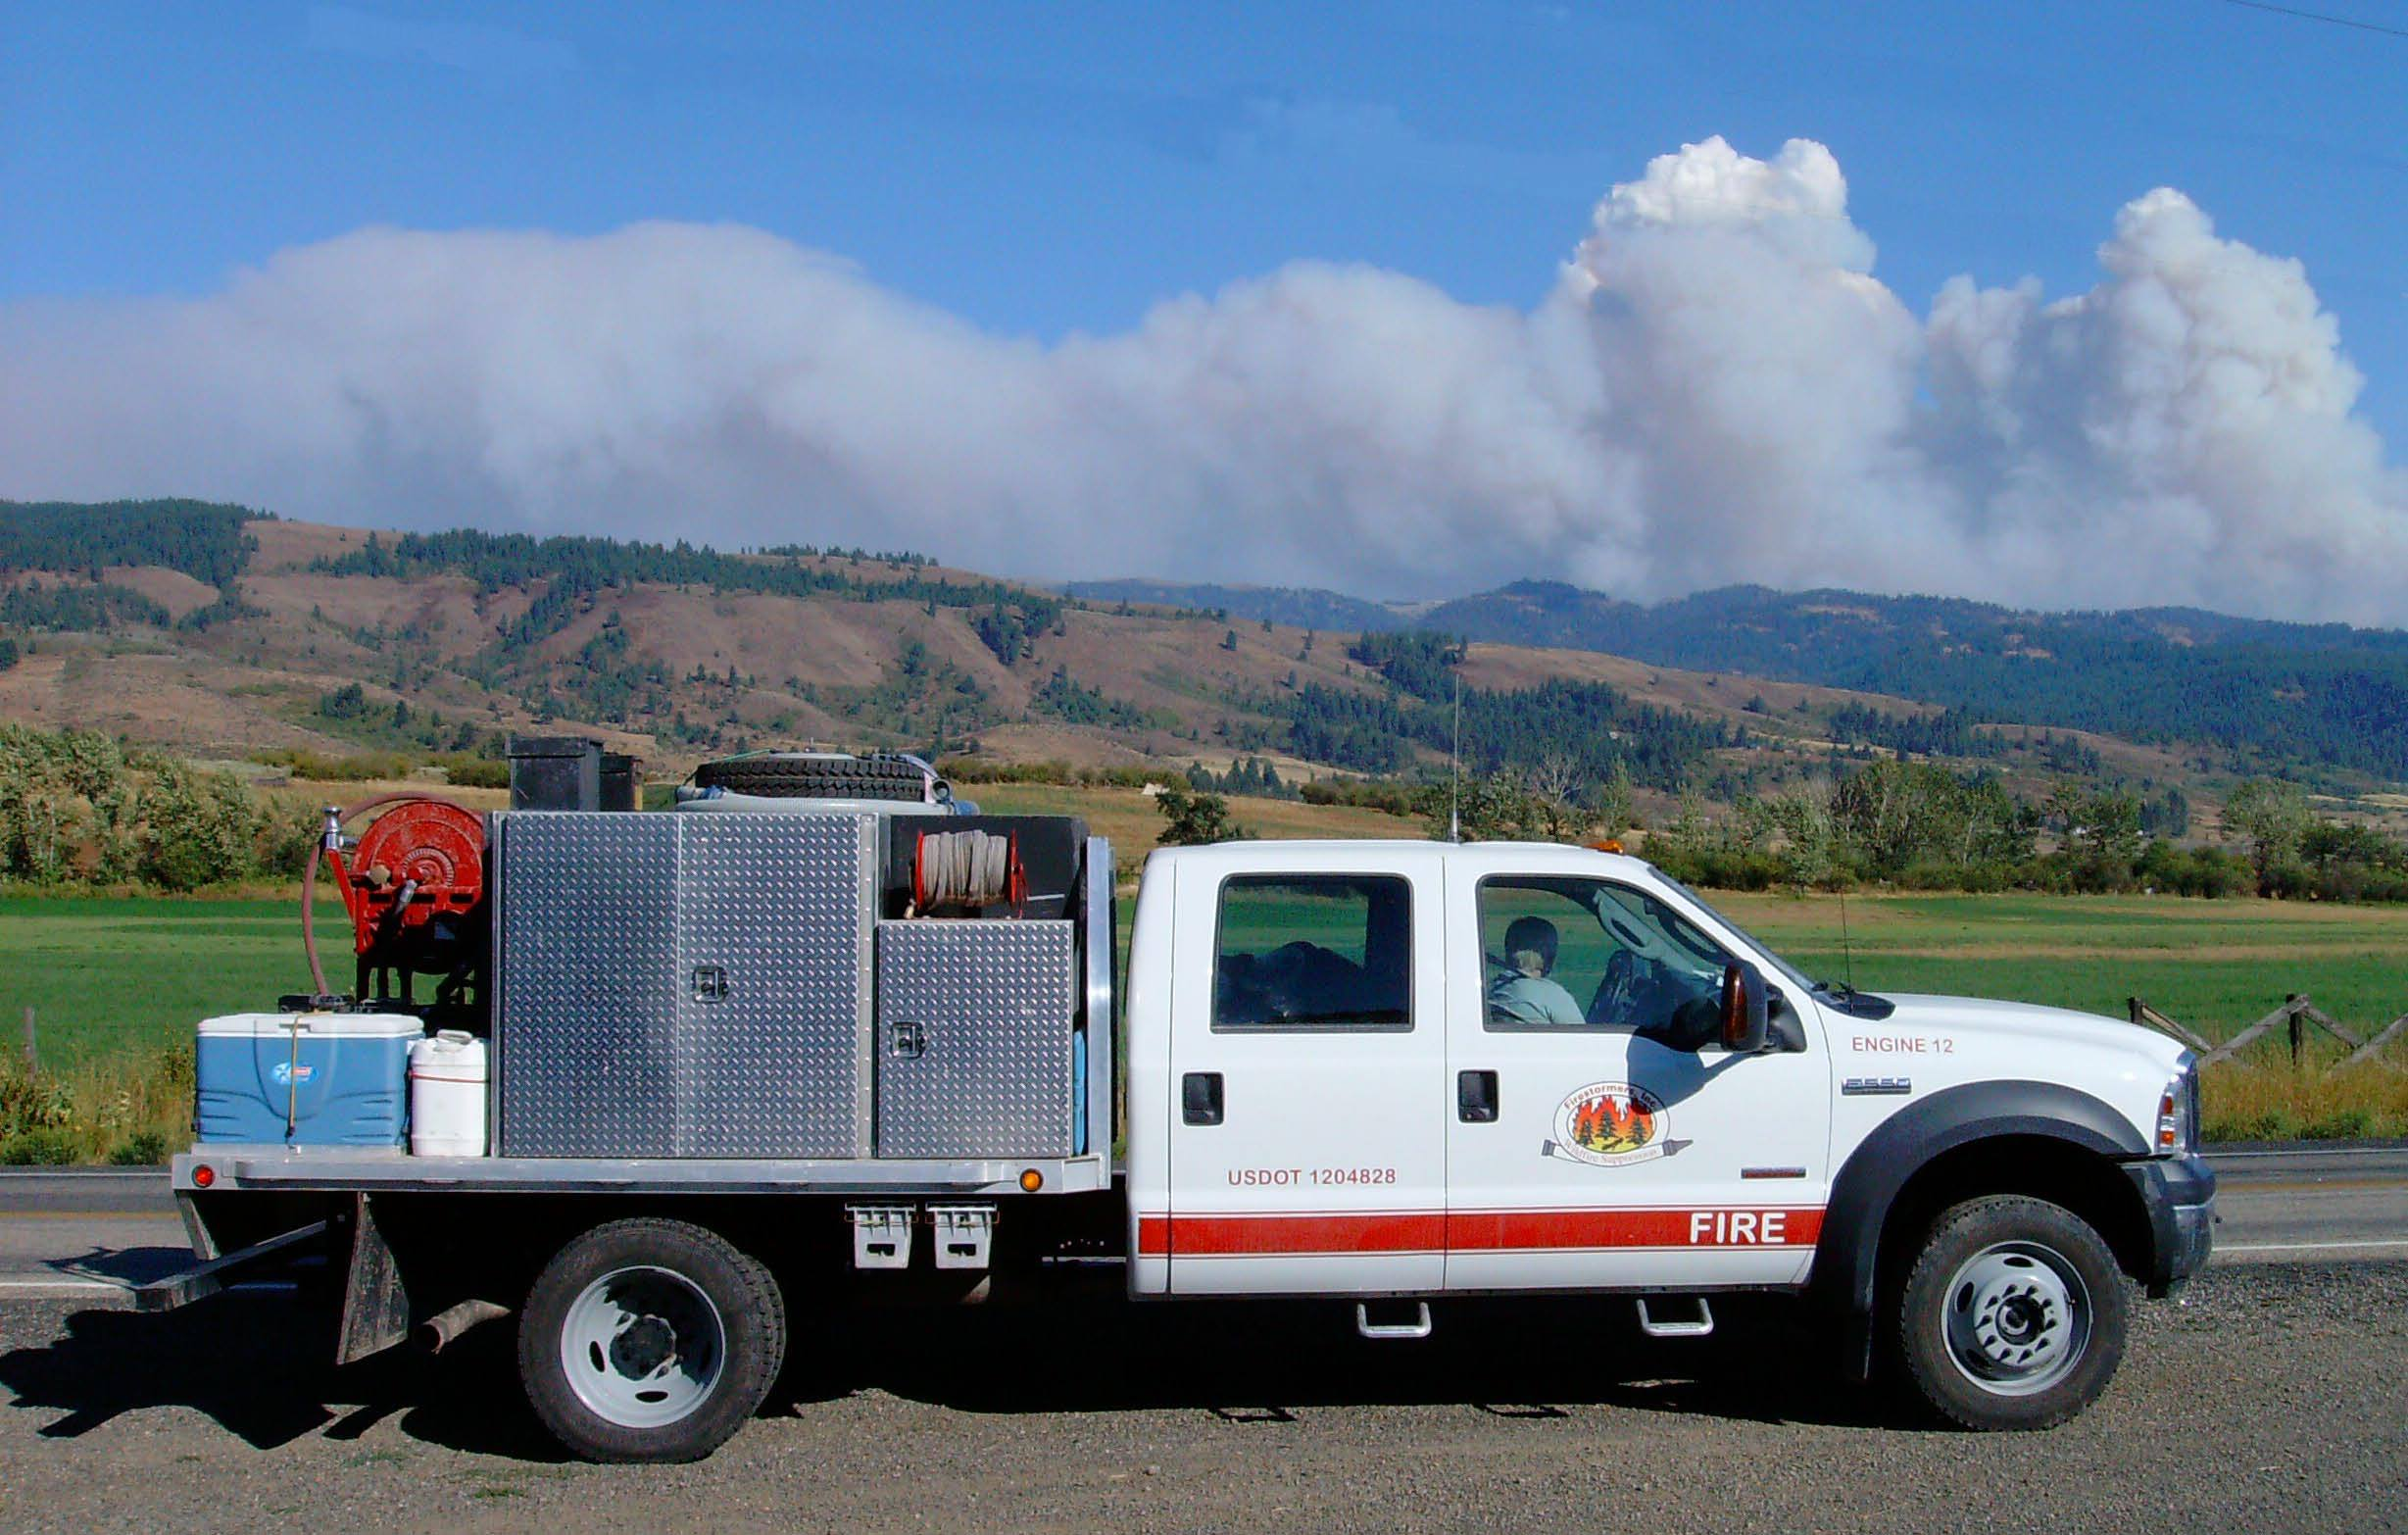 Fire crew stopped in Idaha for a photo opportunity with a large fire Defensive Eco- __fg_link_0__  courses both reduce incidents and improve fuel efficiency. in the background.